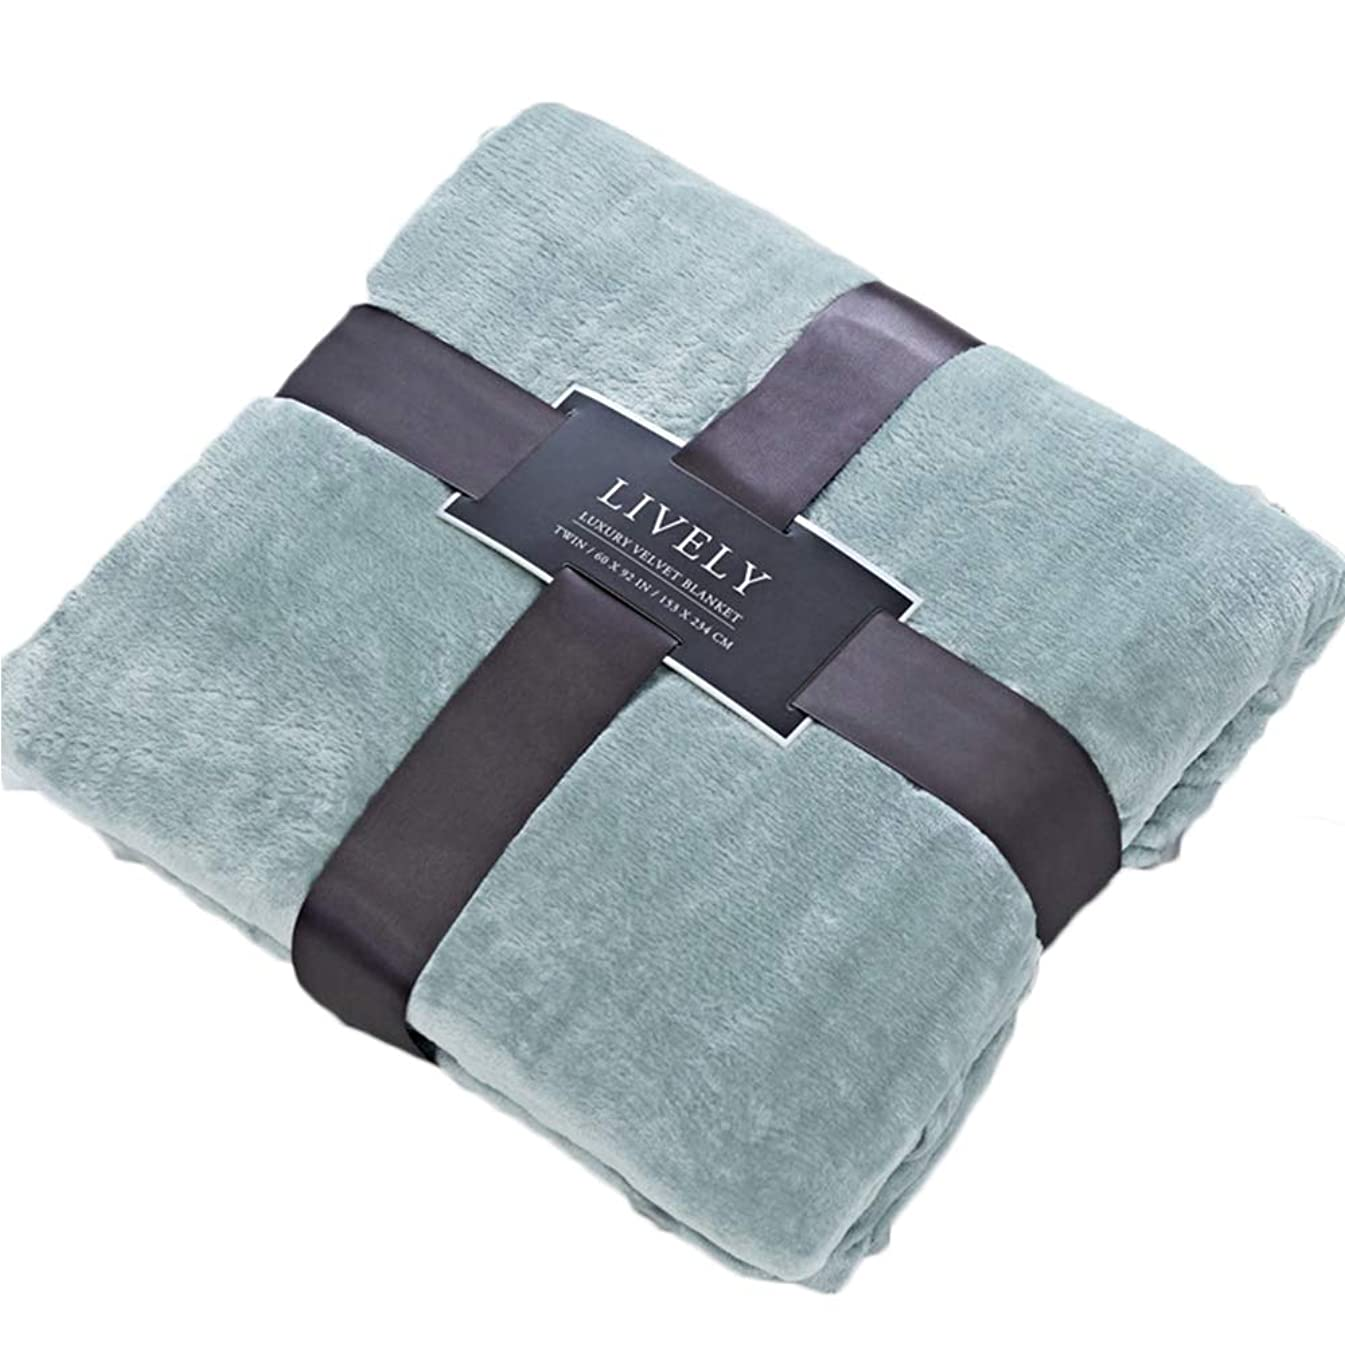 CLOTHKNOW Solid Green Flannel Blanket Throws for Bed King, Lightweight Flannel Blankets California King - 90